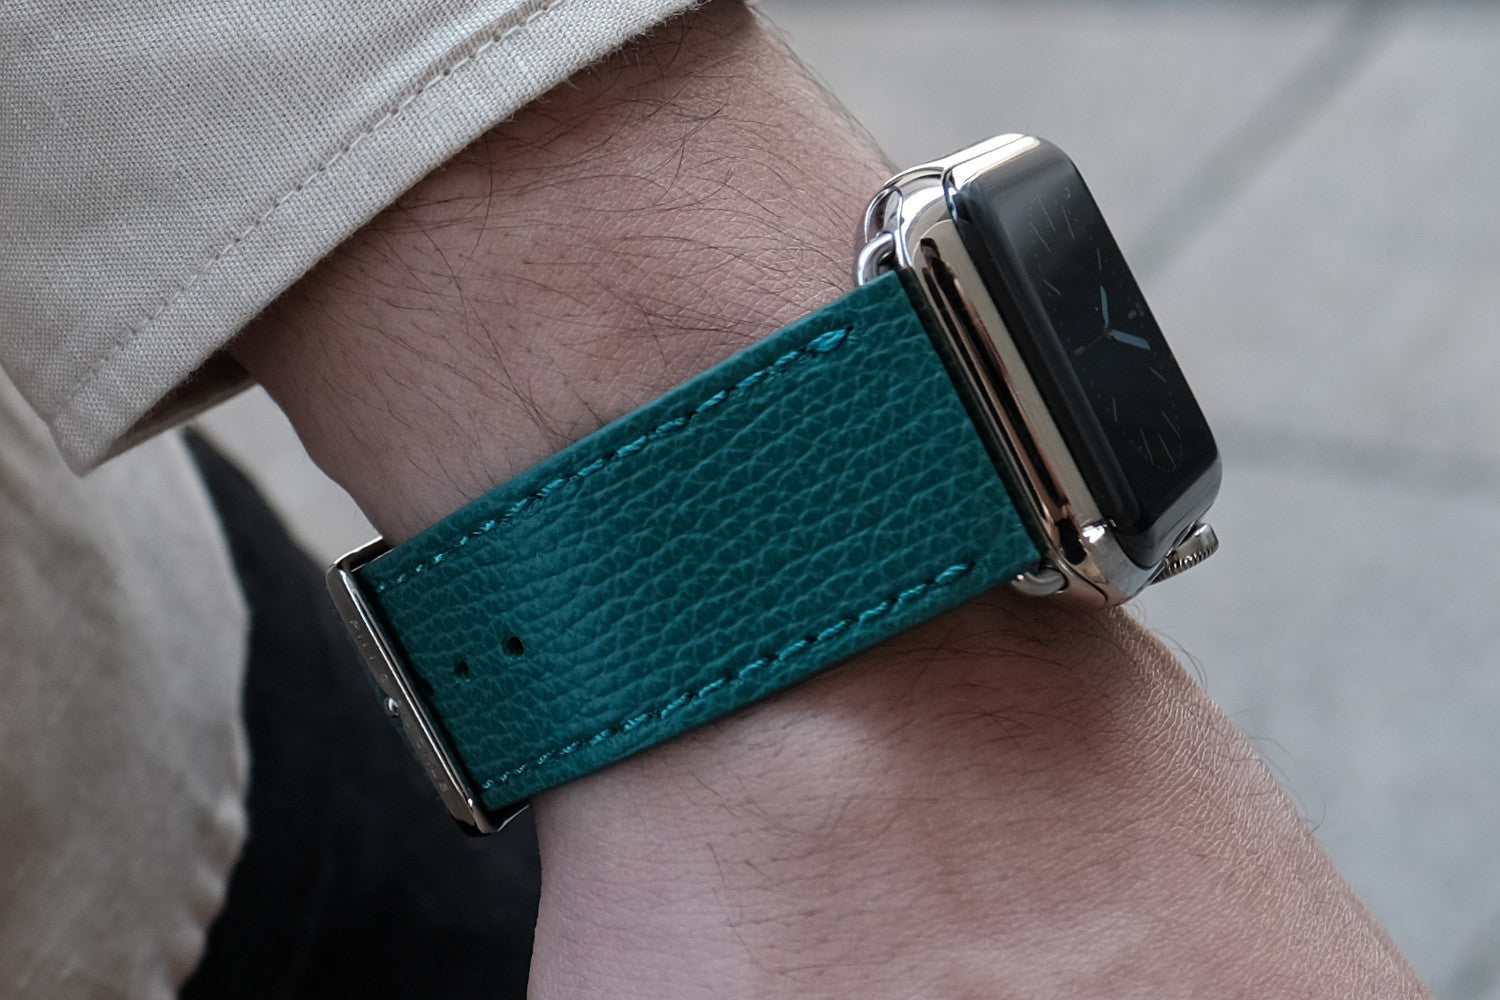 Pin and Buckle Apple Watch Bands - Epsom - Leather Apple Watch Band - Forest Green - Delicately Textured Leather